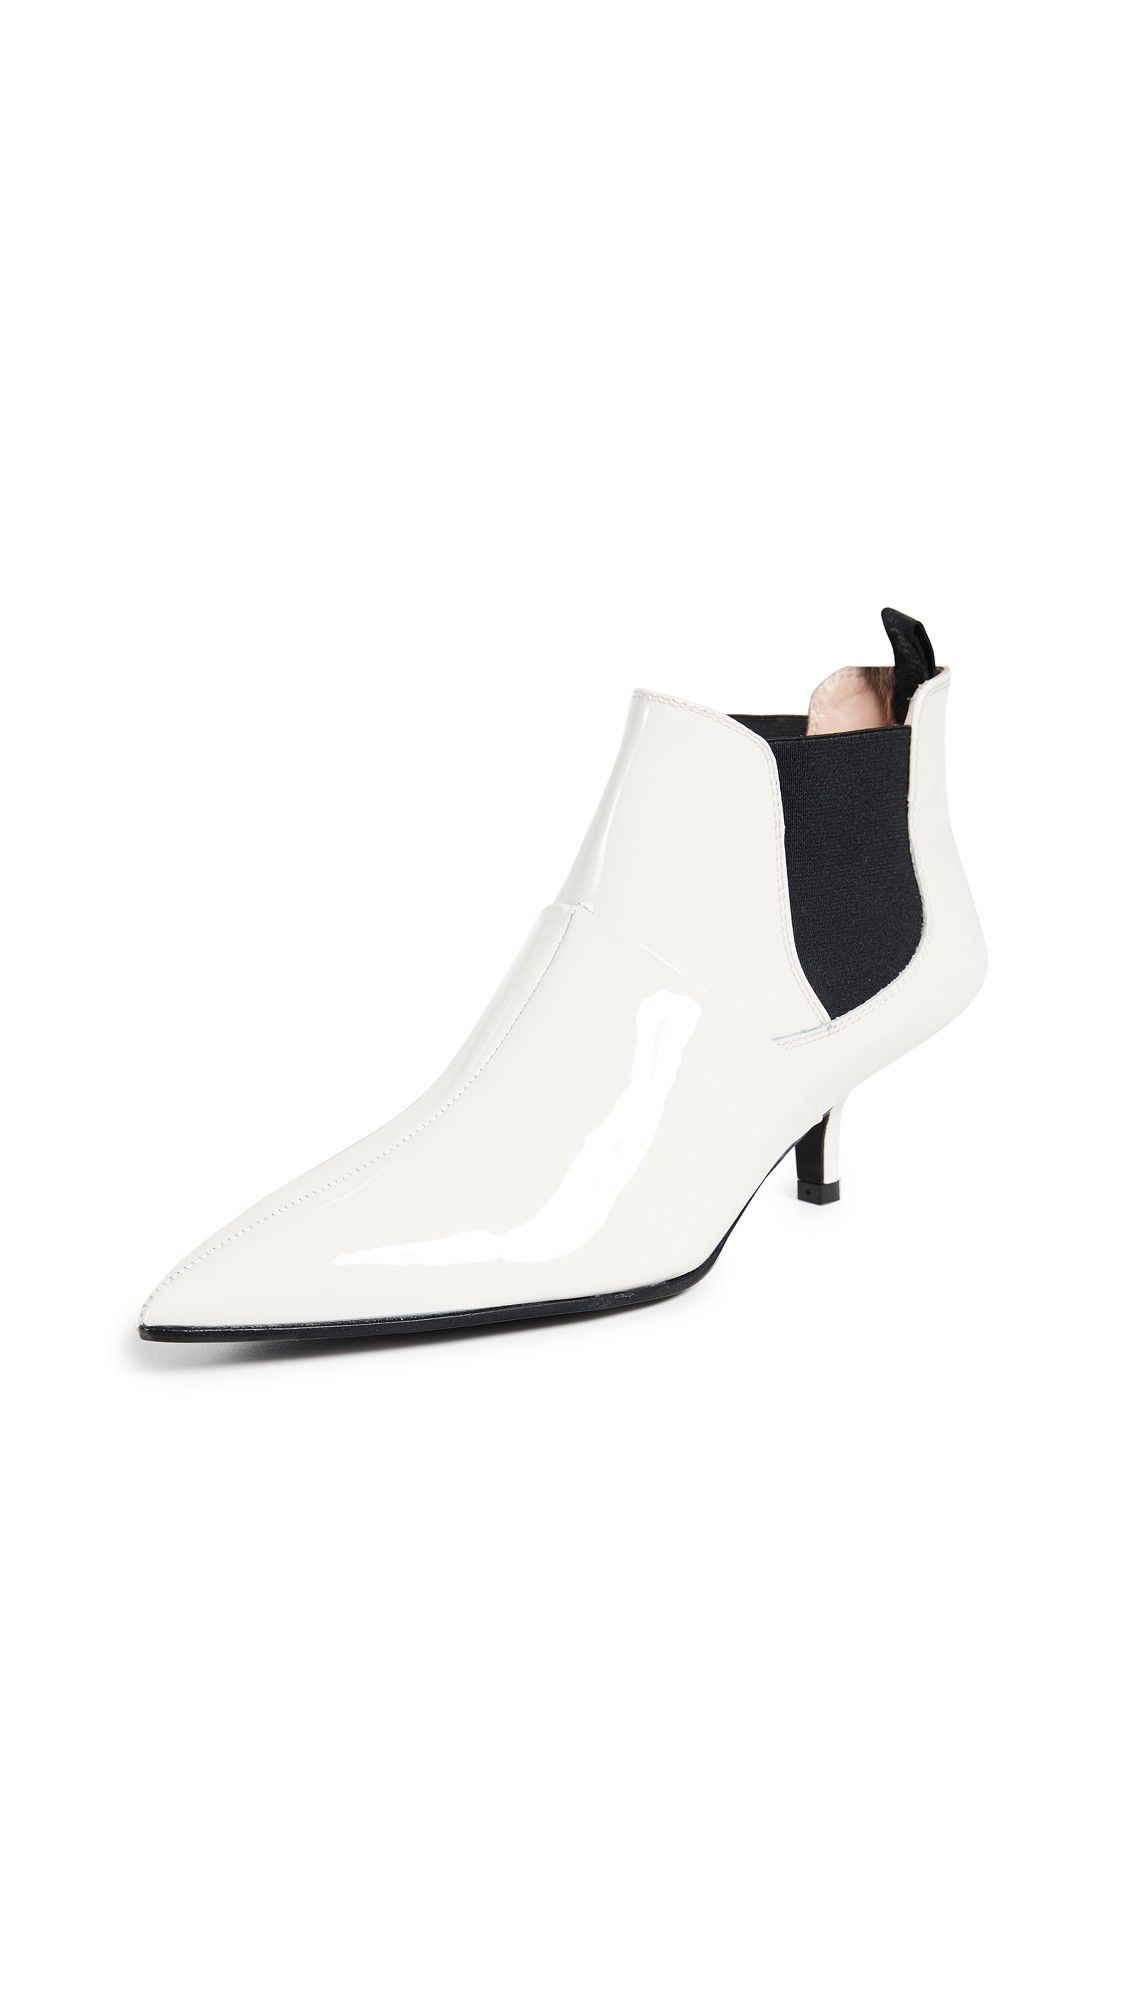 Acne Studios Kity Booties - White